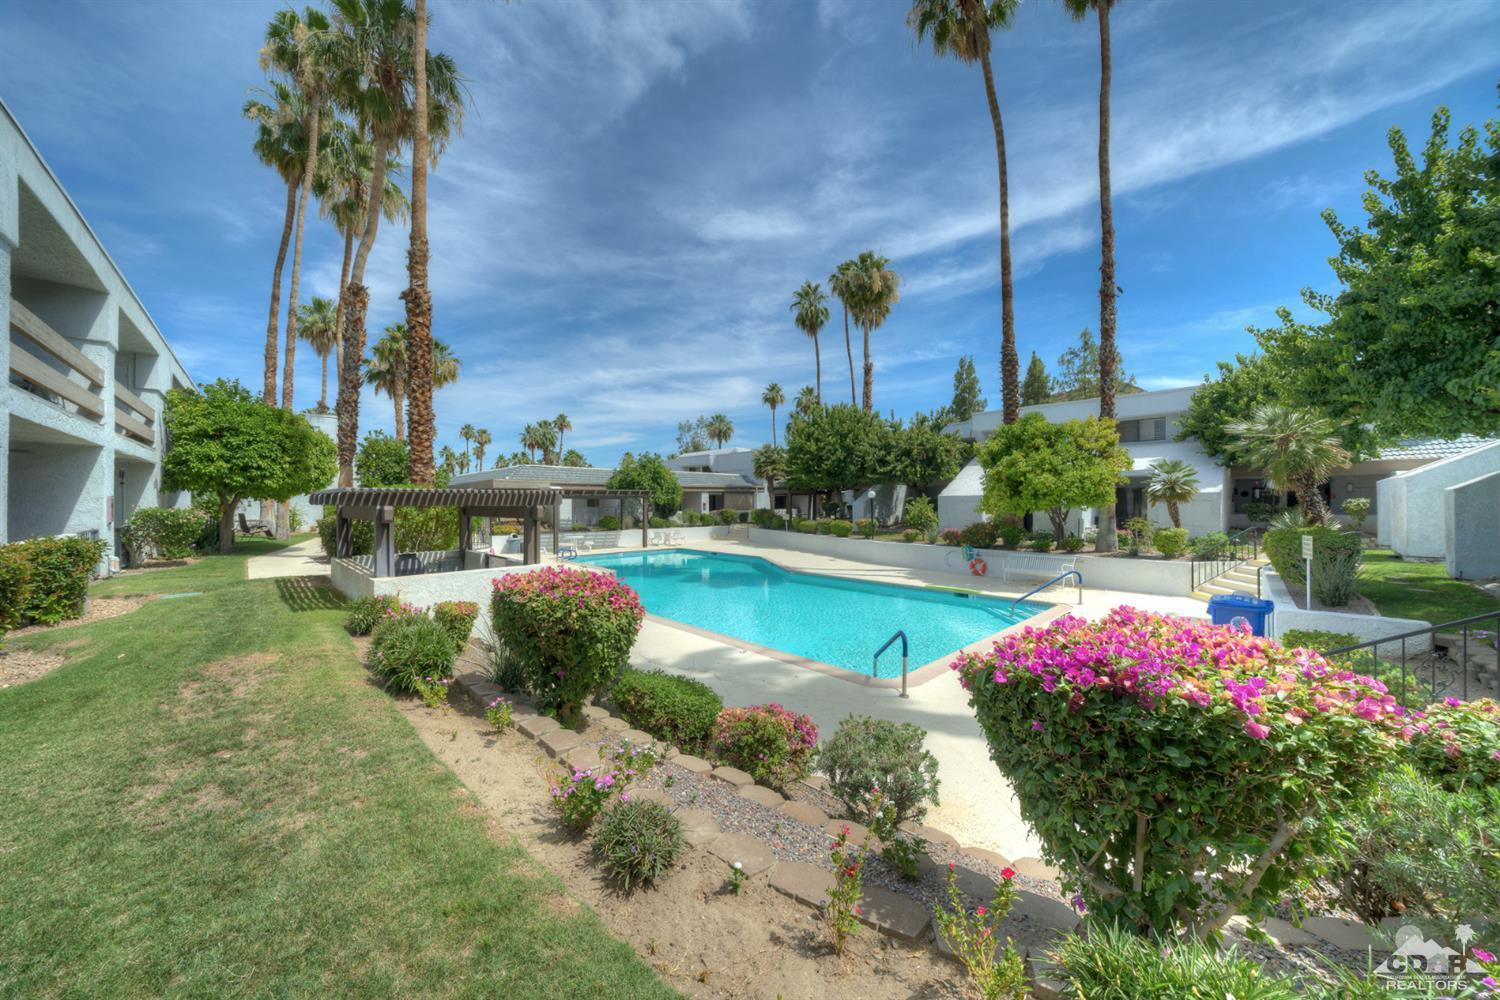 5301 E Waverly Drive, Palm Springs, California 92264, 1 Bedroom Bedrooms, ,2 BathroomsBathrooms,Residential,Sold,5301 E Waverly Drive,219016591